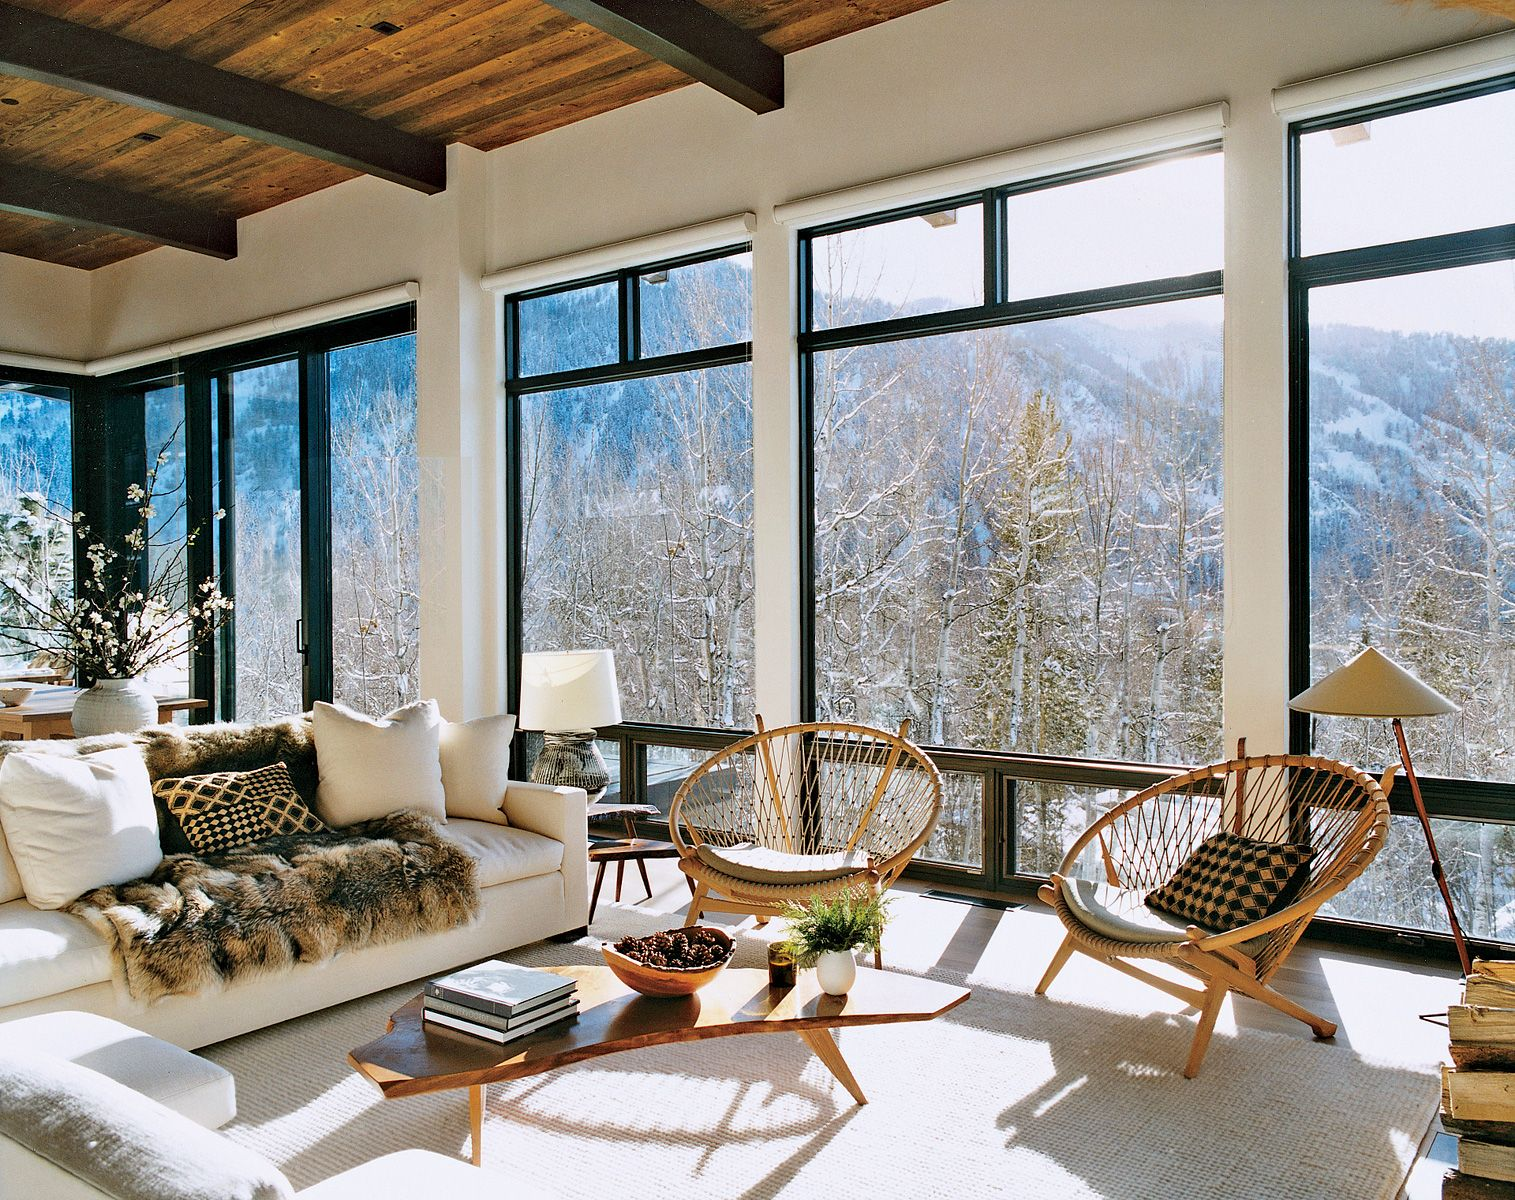 Exceptionnel My Favorite And My Best   MFAMB Home   The Look For Less  Aerin Lauder Ski  Chalet